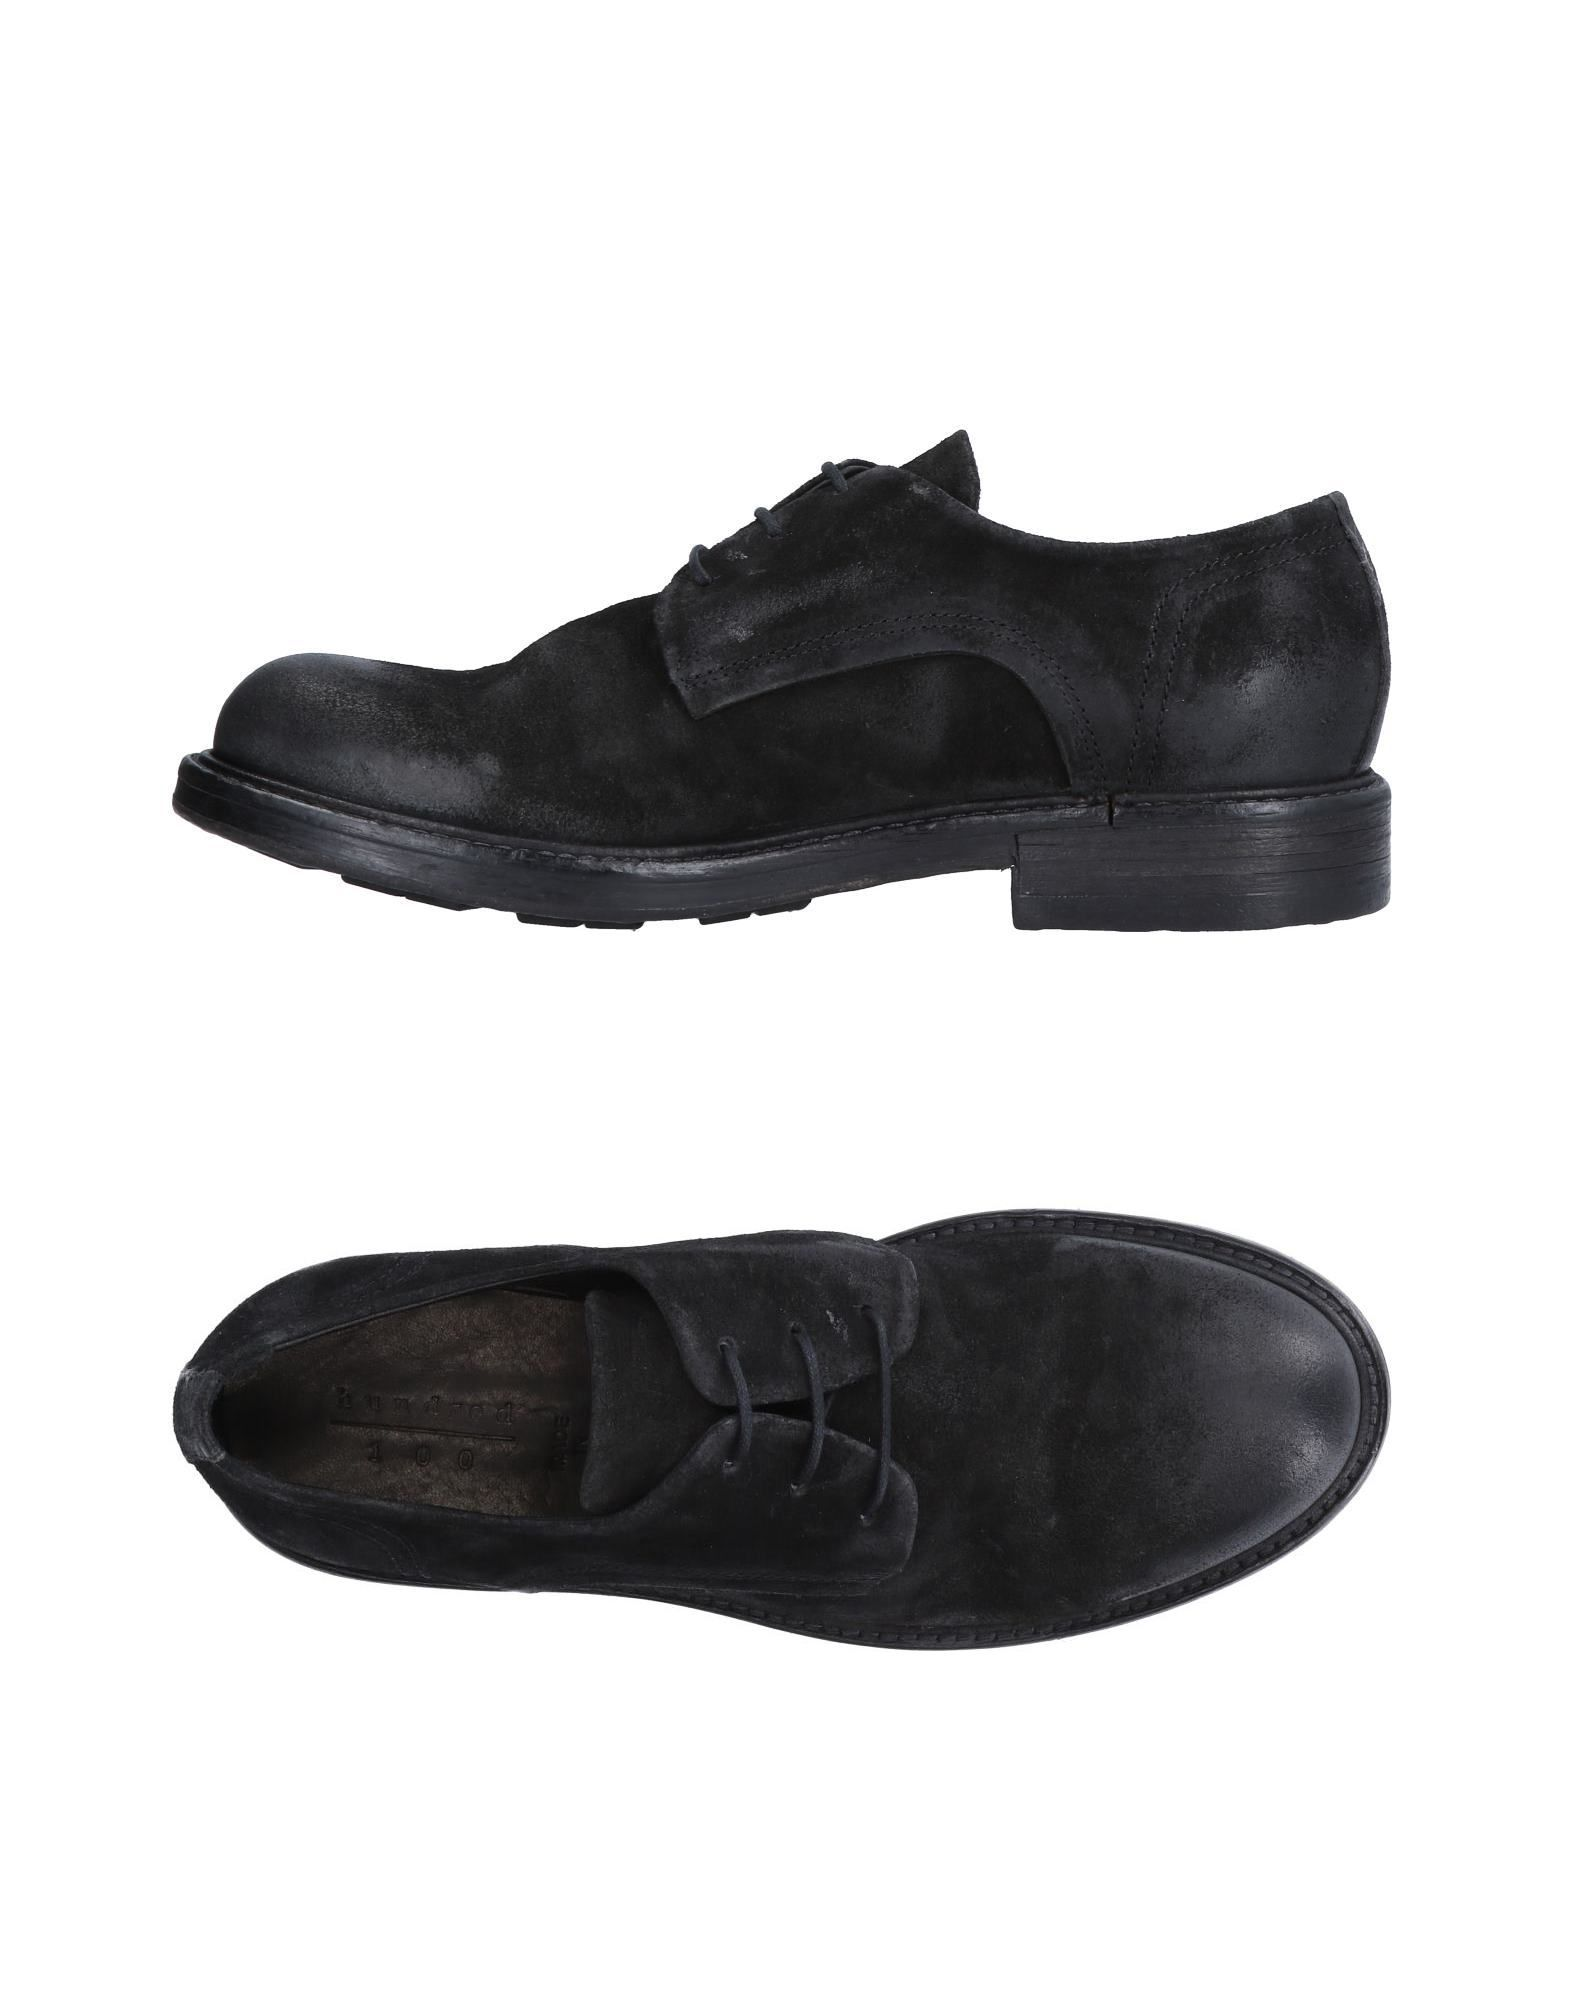 HUNDRED 100 Laced Shoes in Black